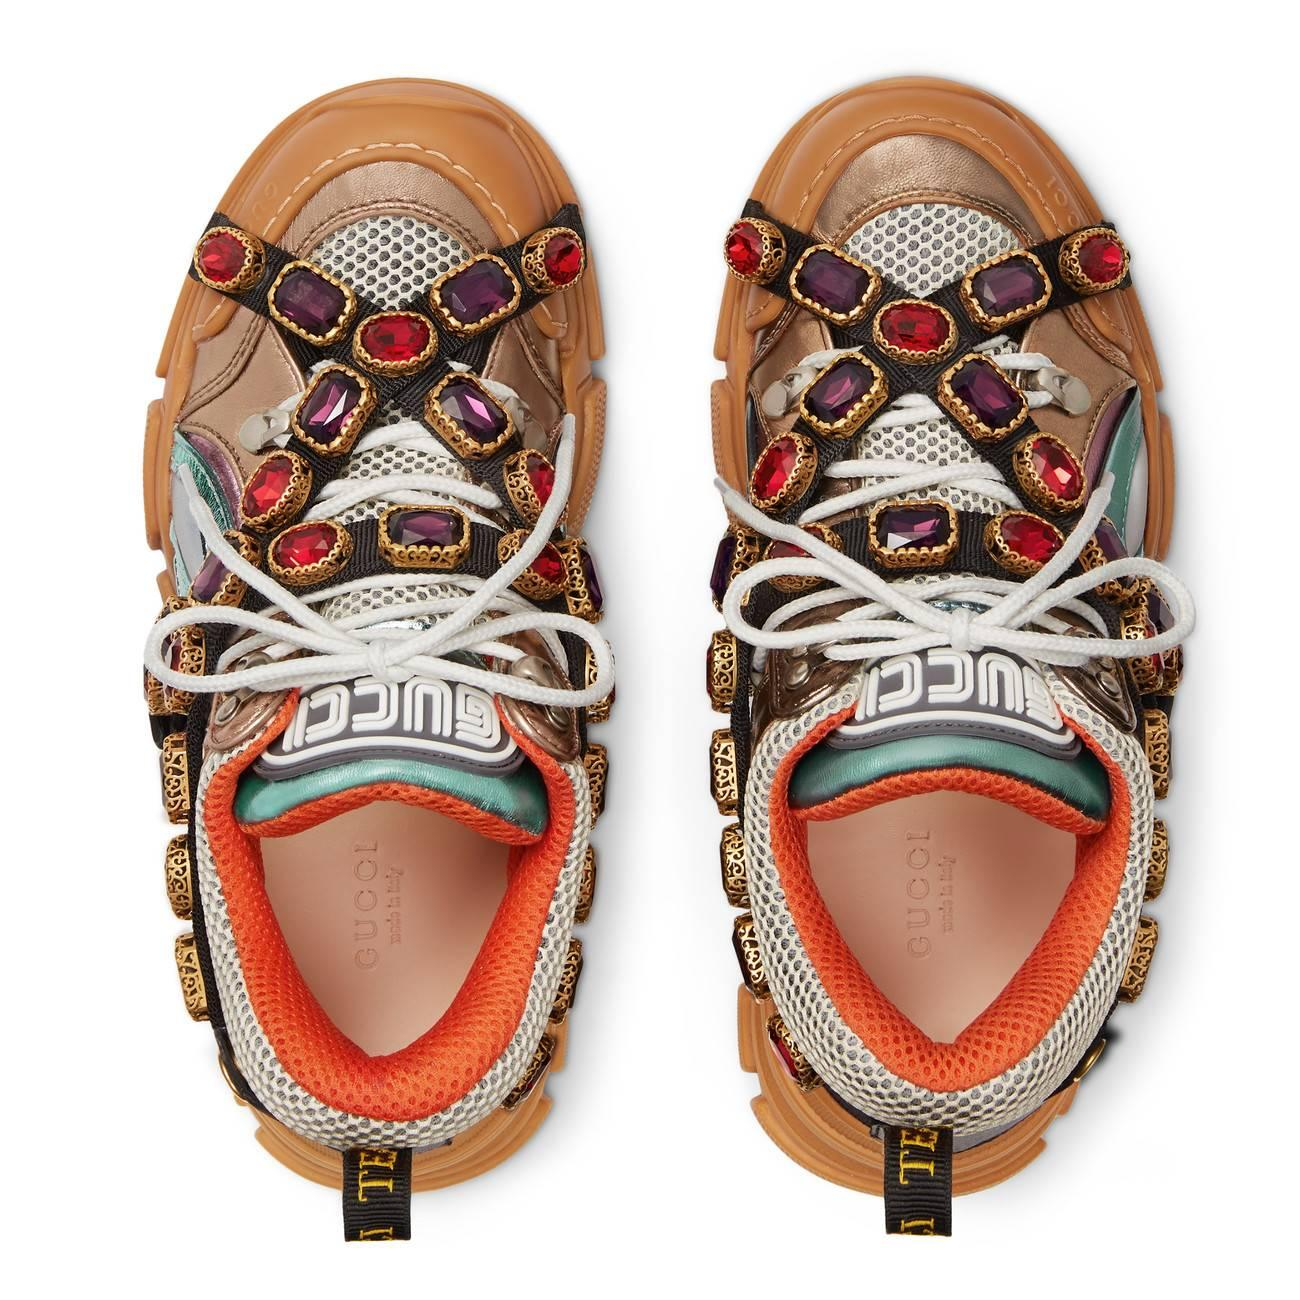 gucci flashtrek sneaker with removable crystals in